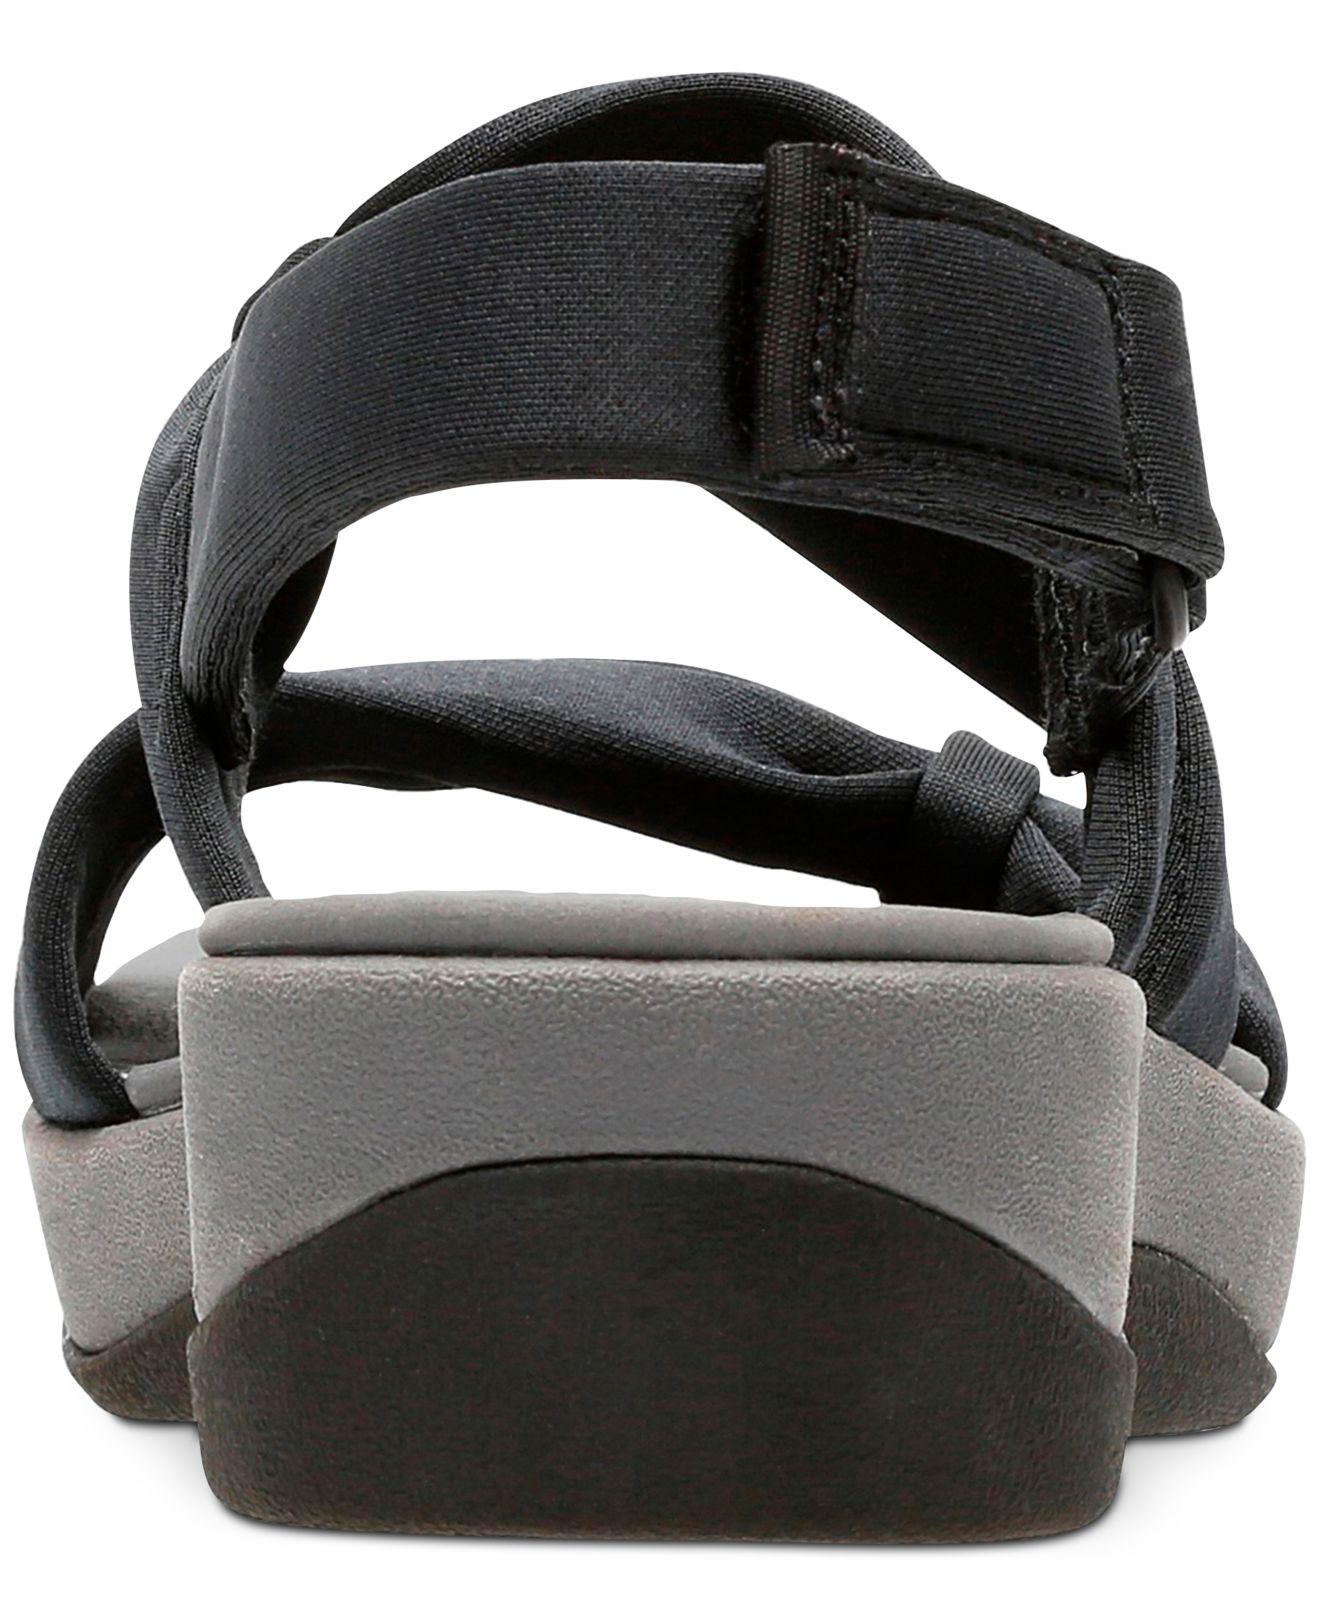 f148f18ecc99 Clarks - Black Cloudsteppers Arla Mae Wedge Sandals - Lyst. View fullscreen